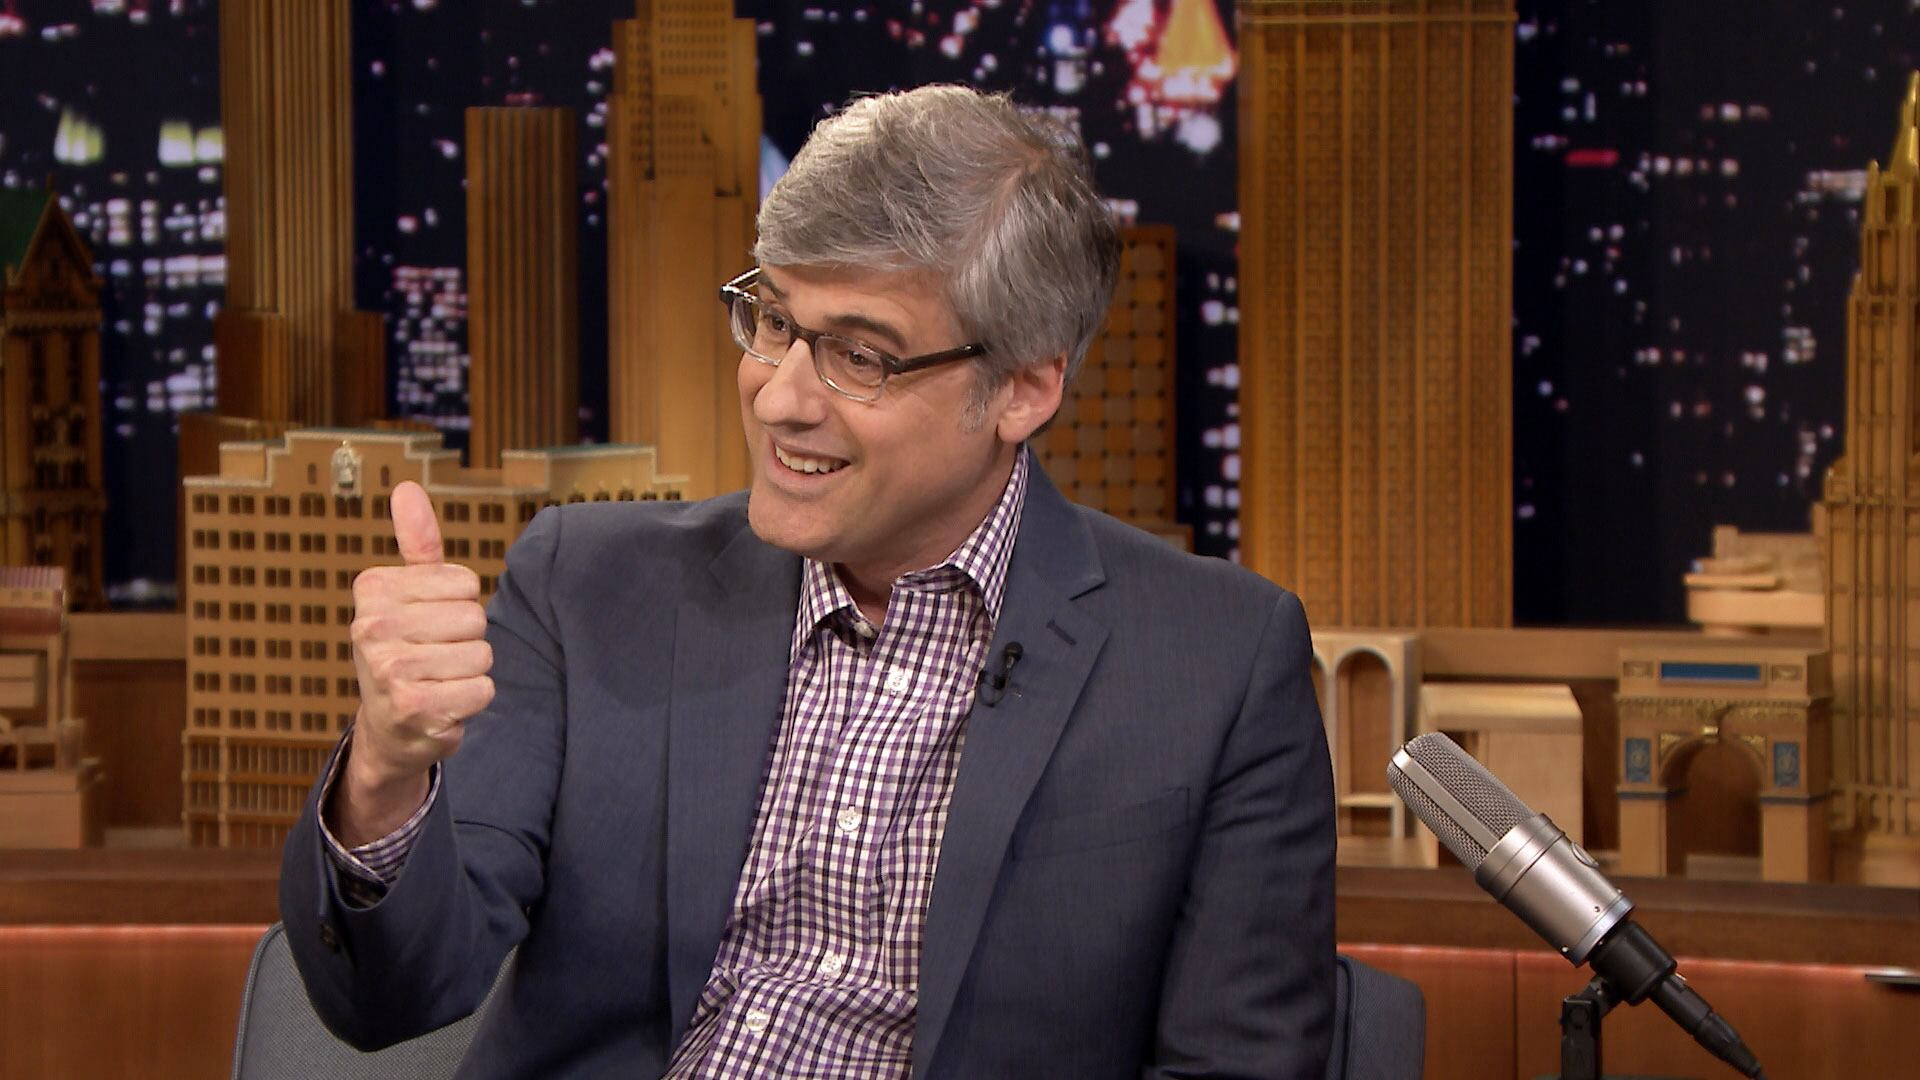 Mo Rocca Got a Thumbs Up from the Pope